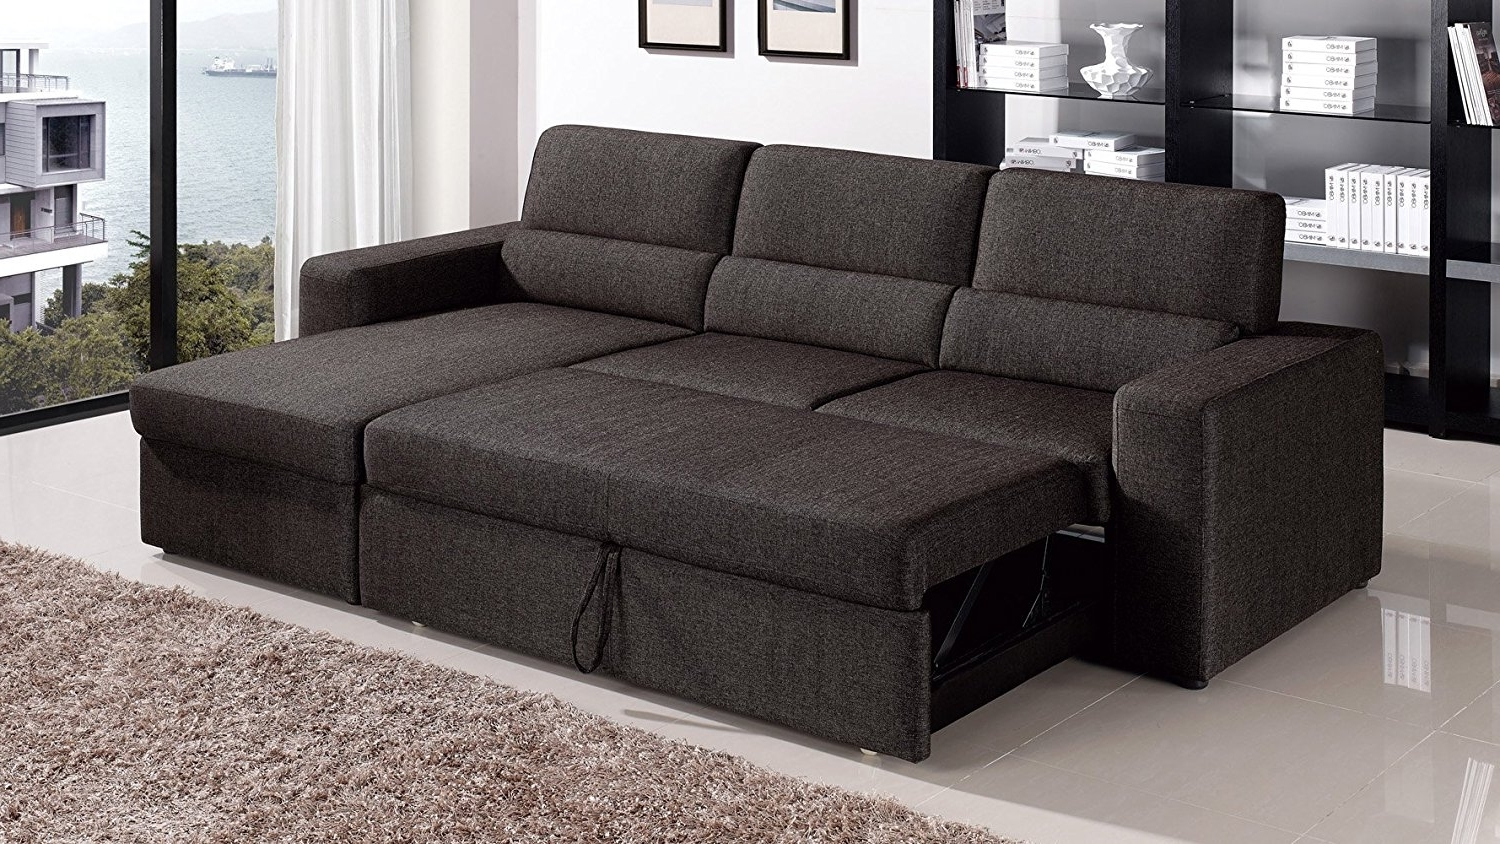 2017 Sleeper Sofa Sectionals With Chaise Regarding Amazon: Black/brown Clubber Sleeper Sectional Sofa – Right (View 12 of 15)